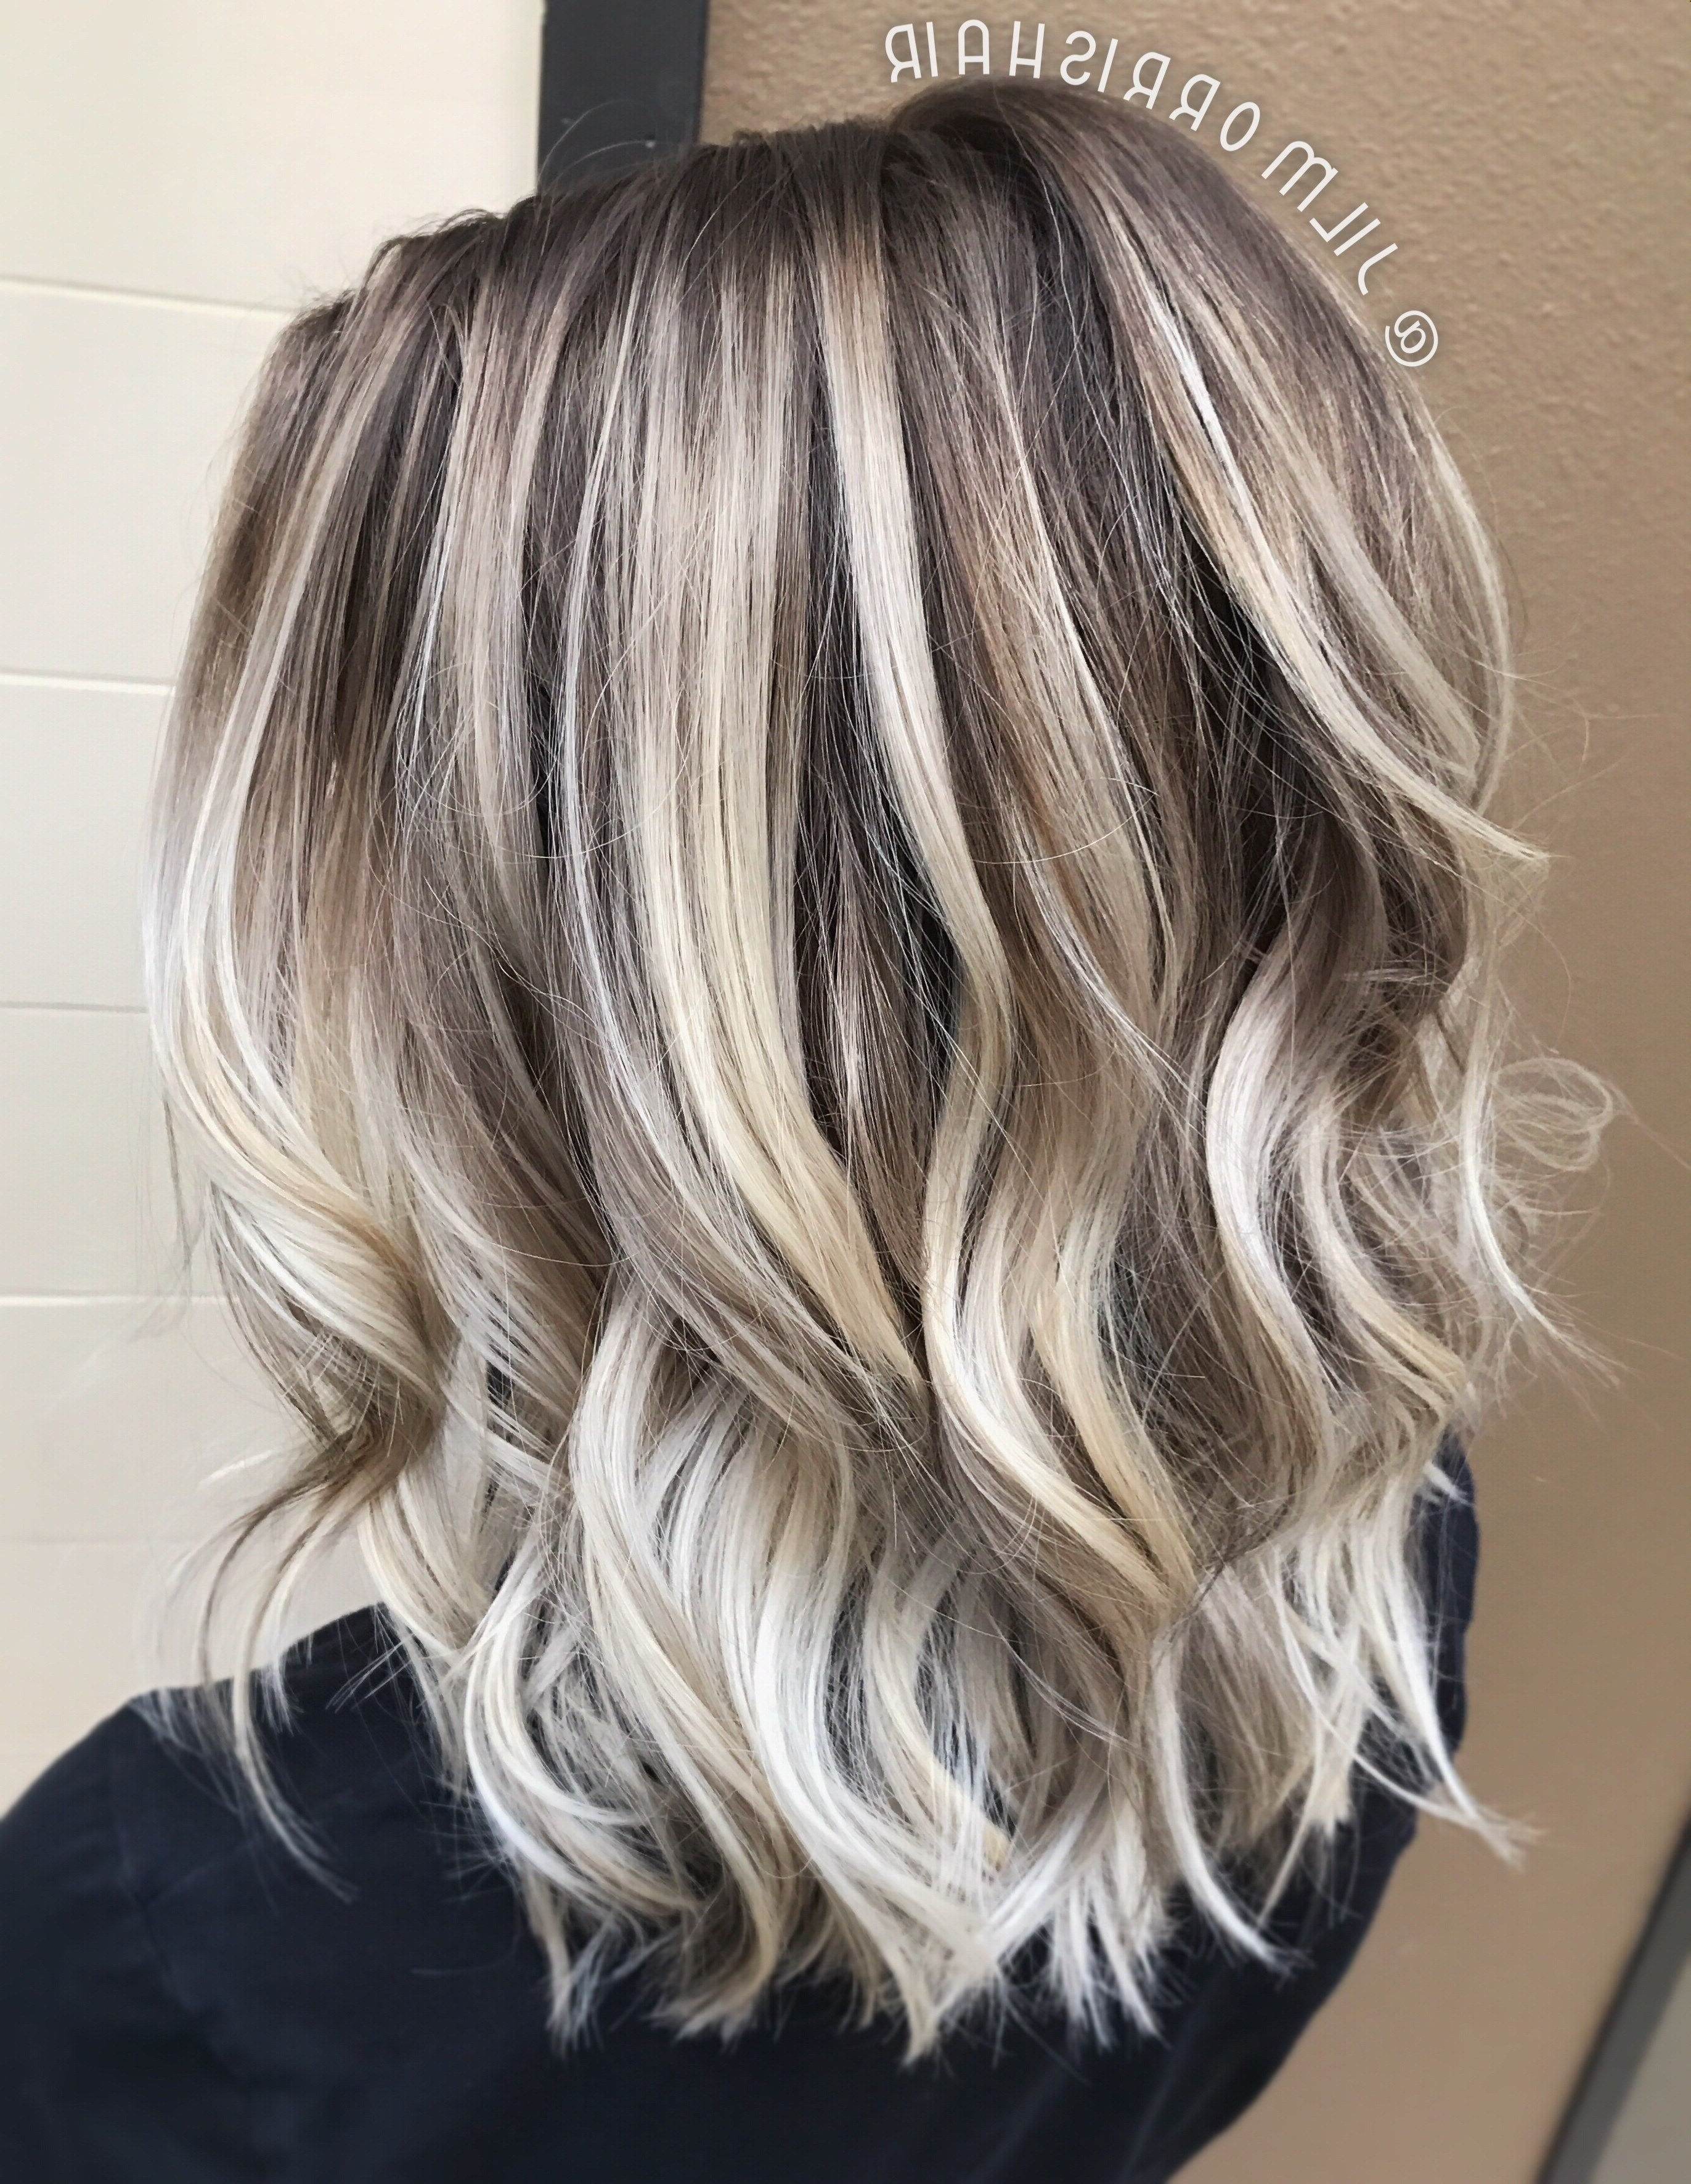 Most Recent Cool Dirty Blonde Balayage Hairstyles For Hair Highlights – Cool Icy Ashy Blonde Balayage Highlights, Shadow (View 13 of 20)